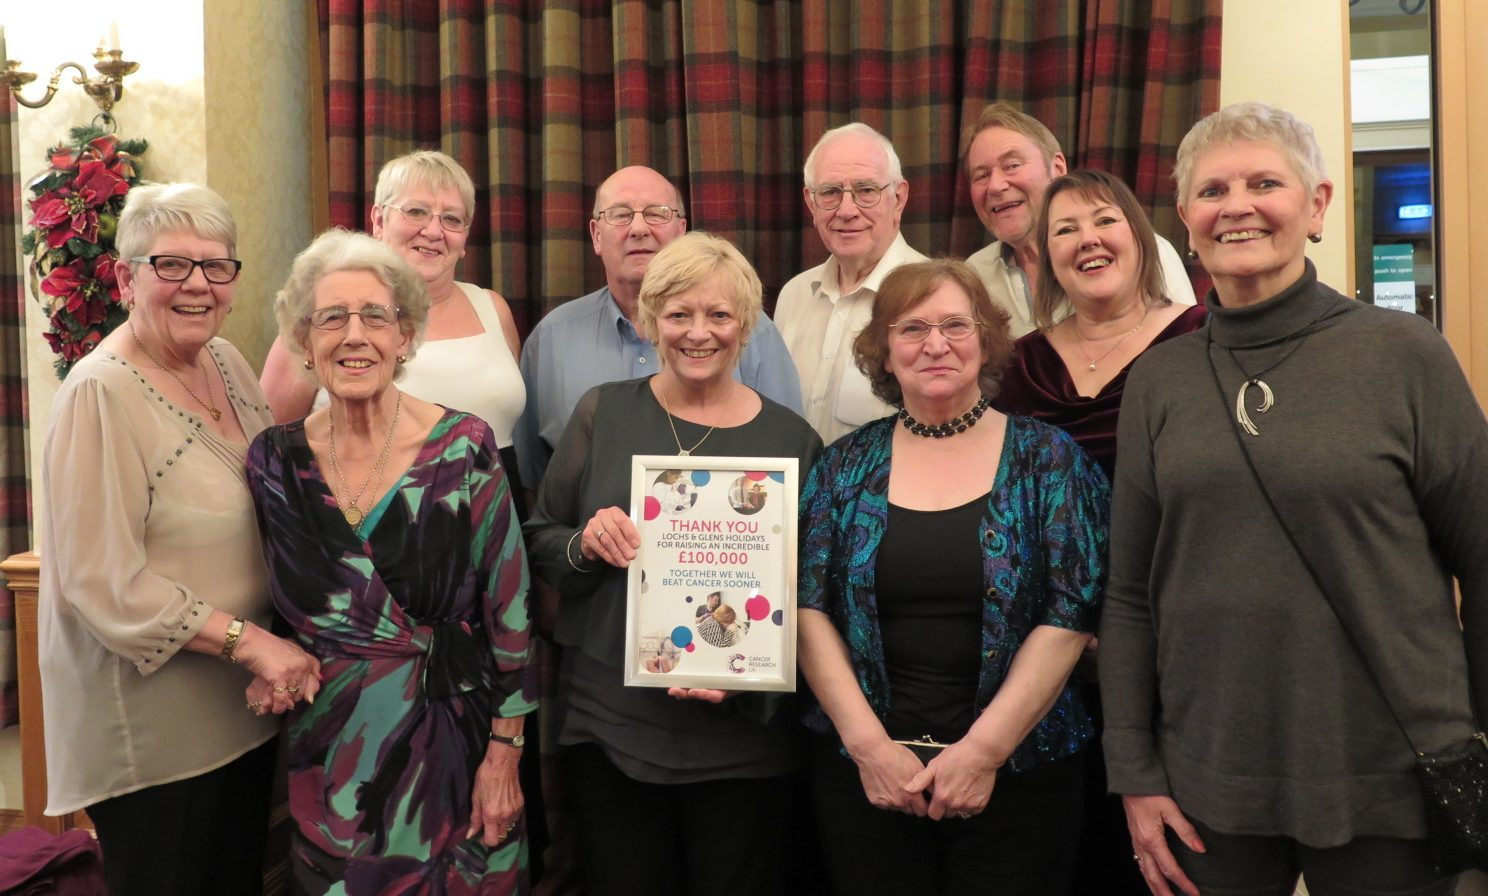 Dorothy Rodger, local fundraising manager for Cancer Research UK presents guests and staff at Lochs & Glens' Loch Tummel Hotel with a certificate to thank them for raising £100,000 to help beat cancer sooner.